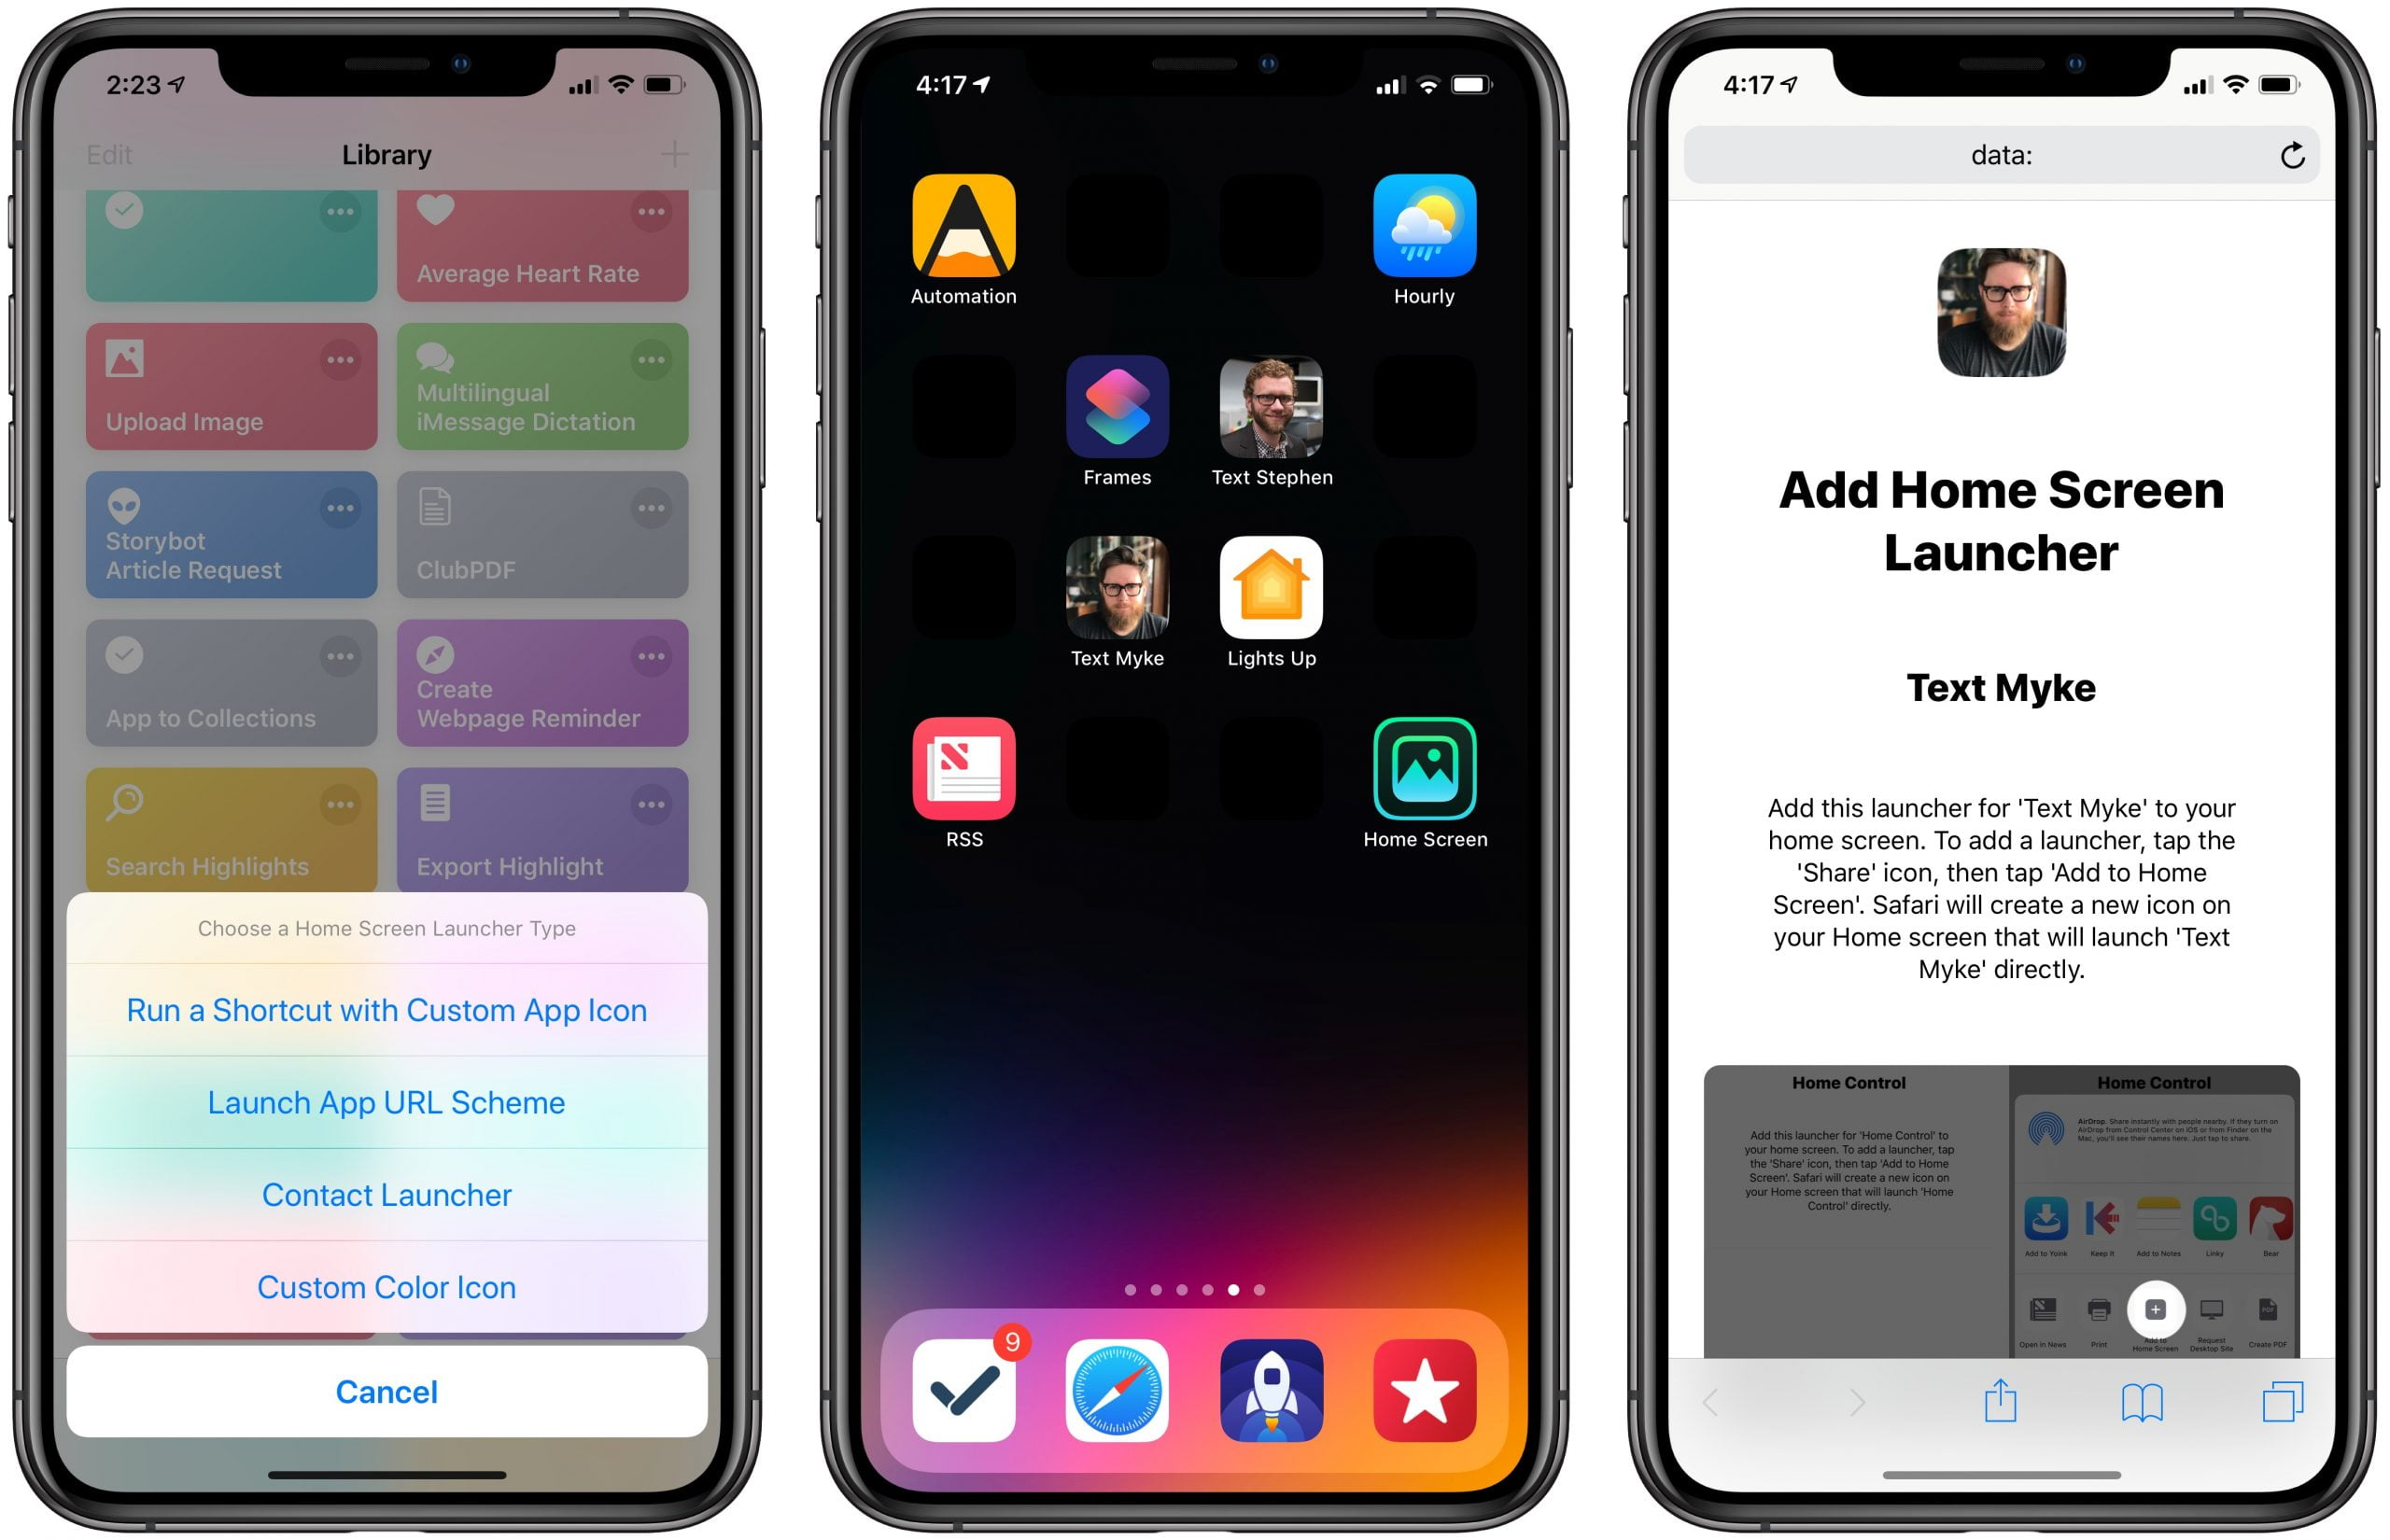 iOS Shortcuts is updated by adding new and interesting features